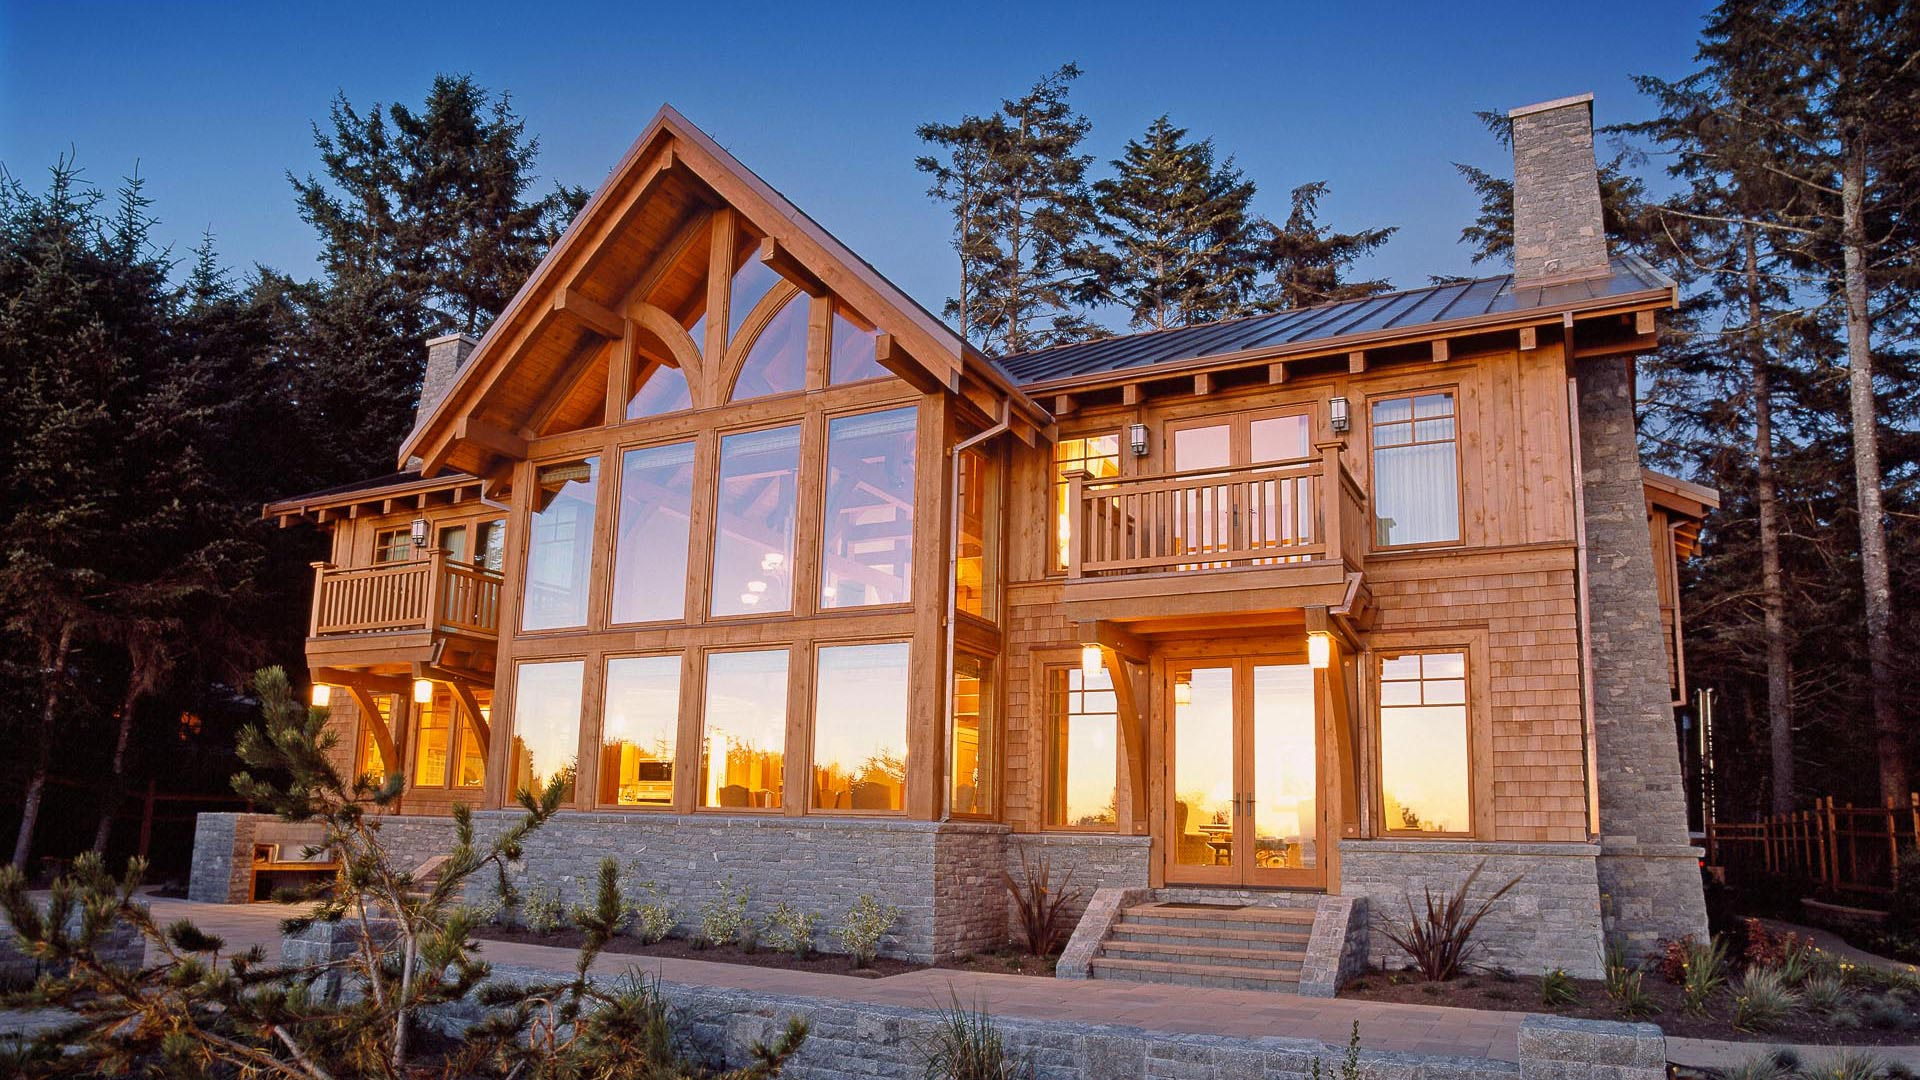 Classic timber frame island timber frame for Timber frame designs